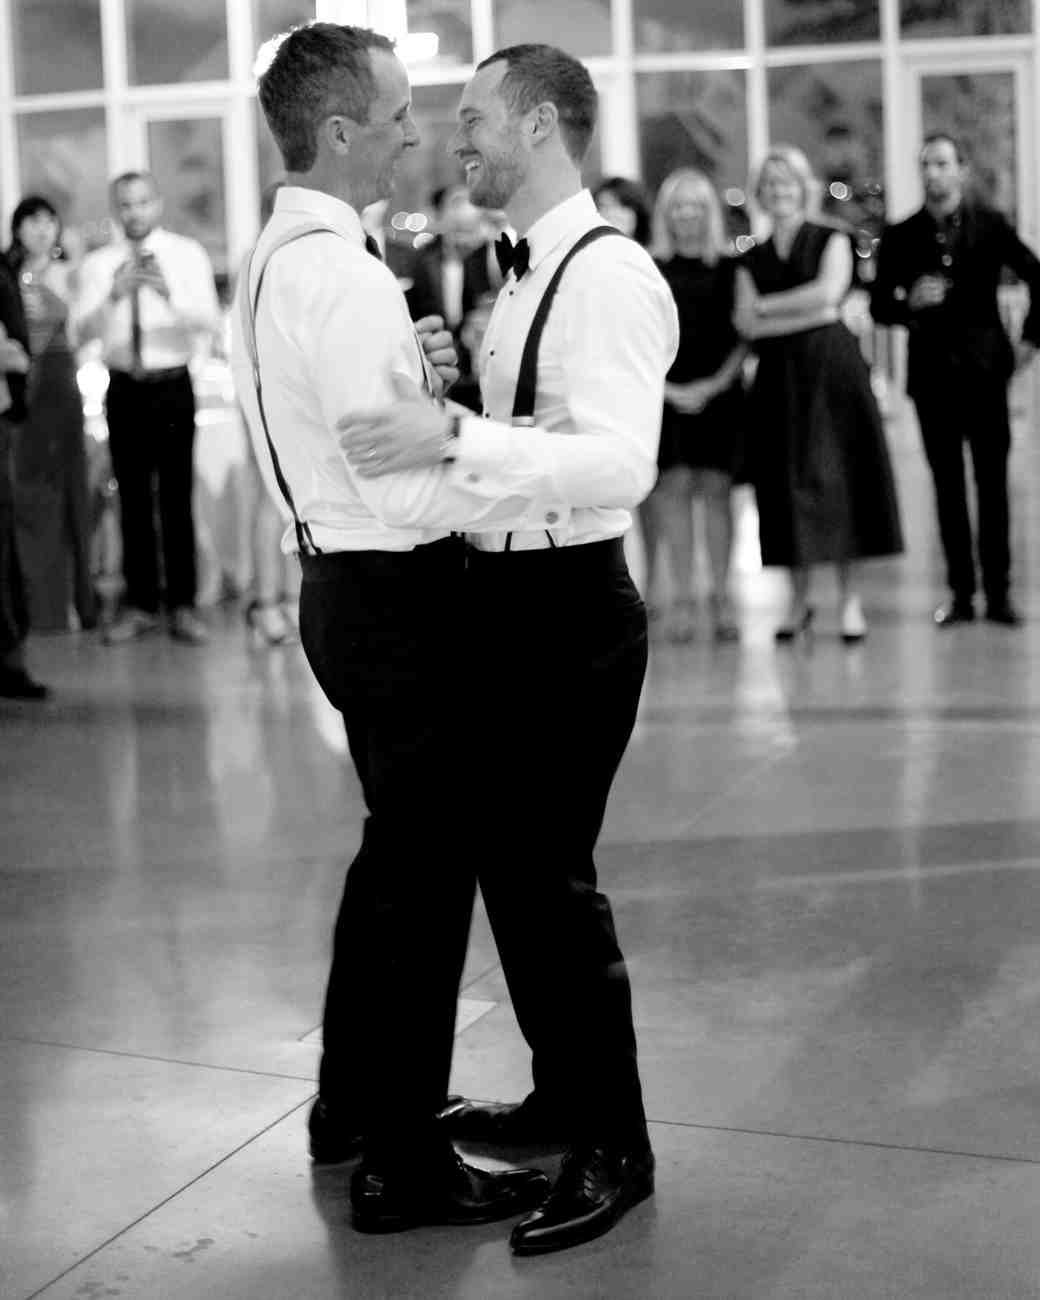 tommy steve wedding firstdance